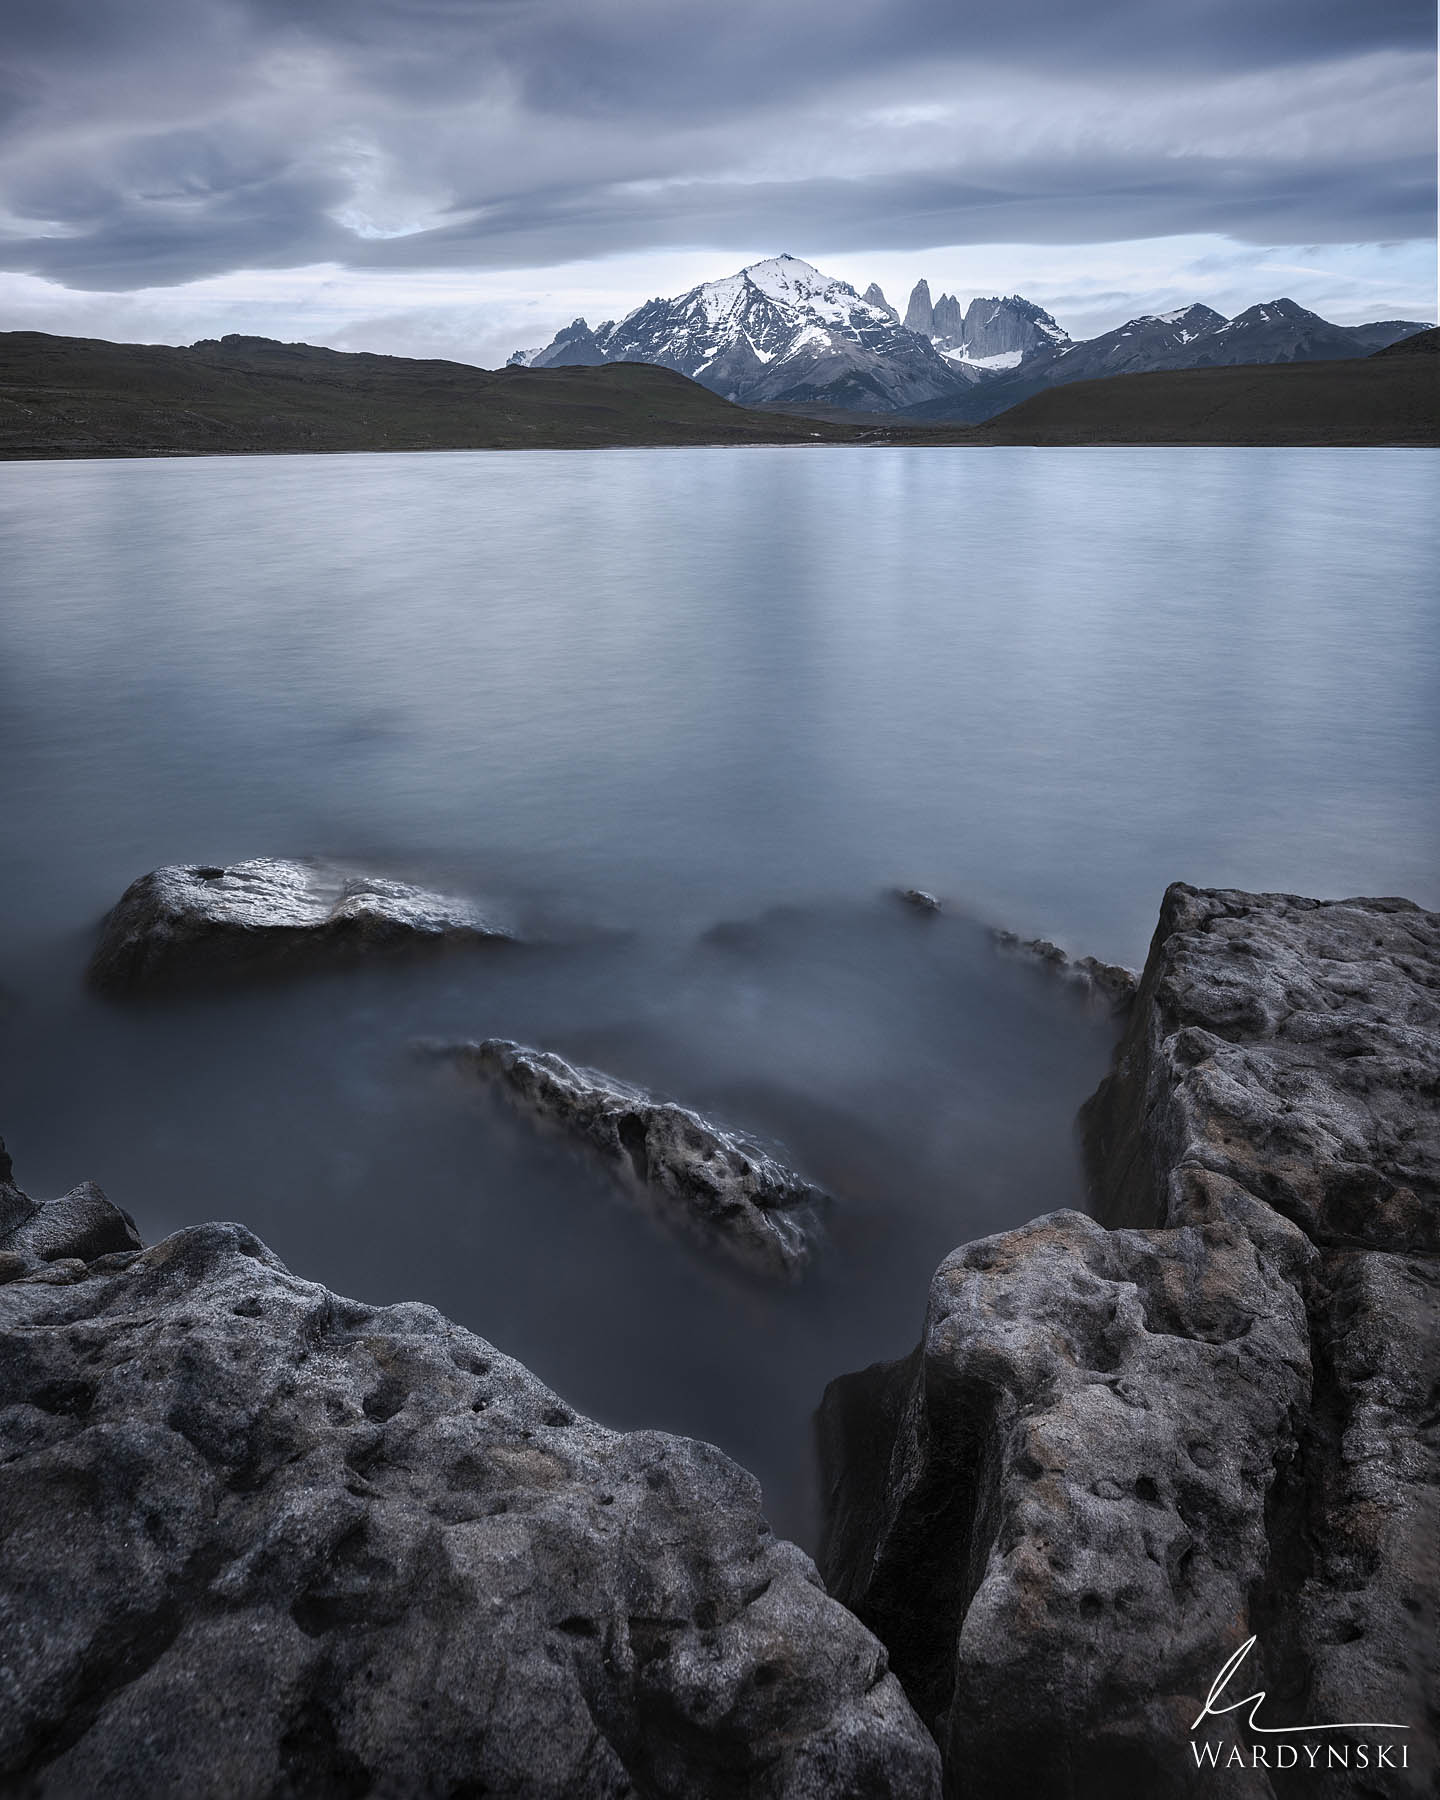 Fine Art Print | Limited Edition of 100  Laguna Amarga is a quiet lake just outside of Torres Del Paine National Park. It offers...